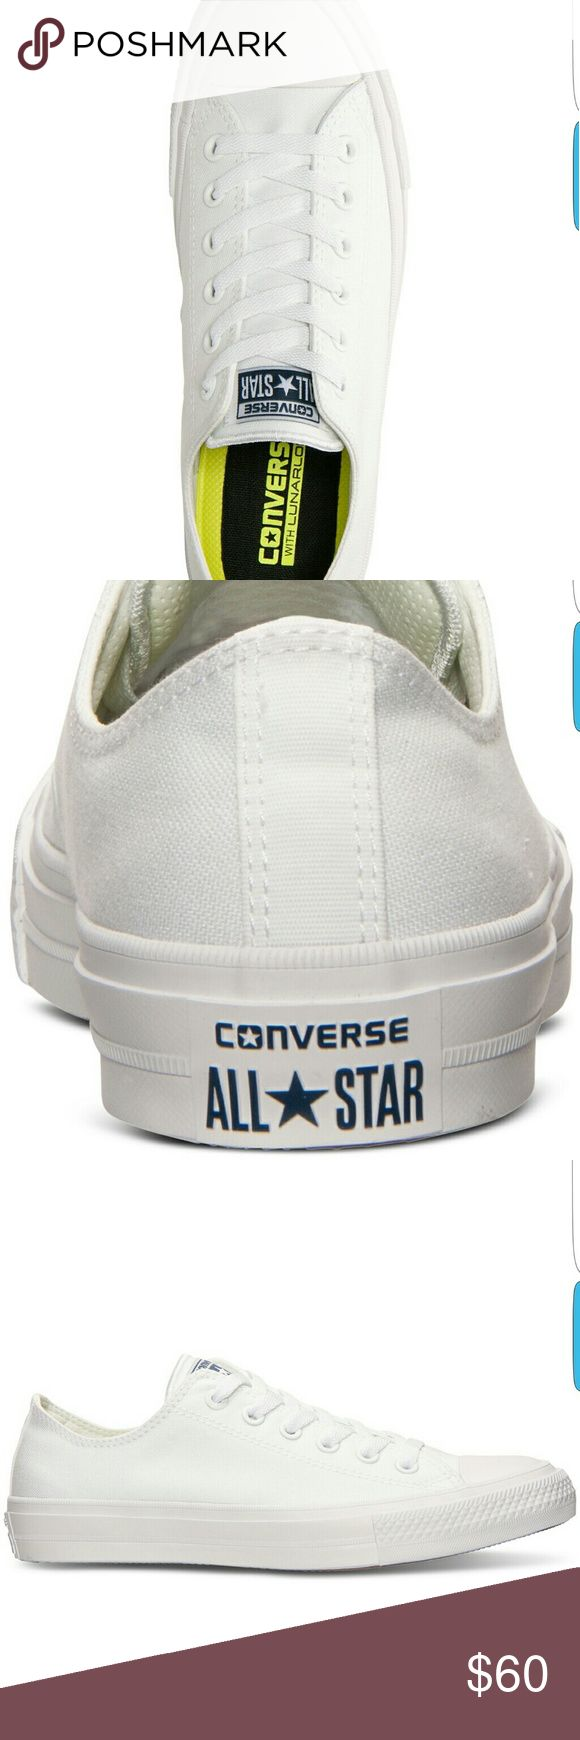 SALE TODAY!! New low cut chuck taylor 2 Converses New without tag white Converse Chuck Taylor All Star II Low is a new and modern take on the classic Chuck Taylor. This updated version is lighter that the original and crafted with a premium canvas upper, soft micro-suede lining, padded non-slip tongue, and comfortable Lunarlon insole. Size 9.5 NO BOX NO TRADES Converse Shoes Sneakers